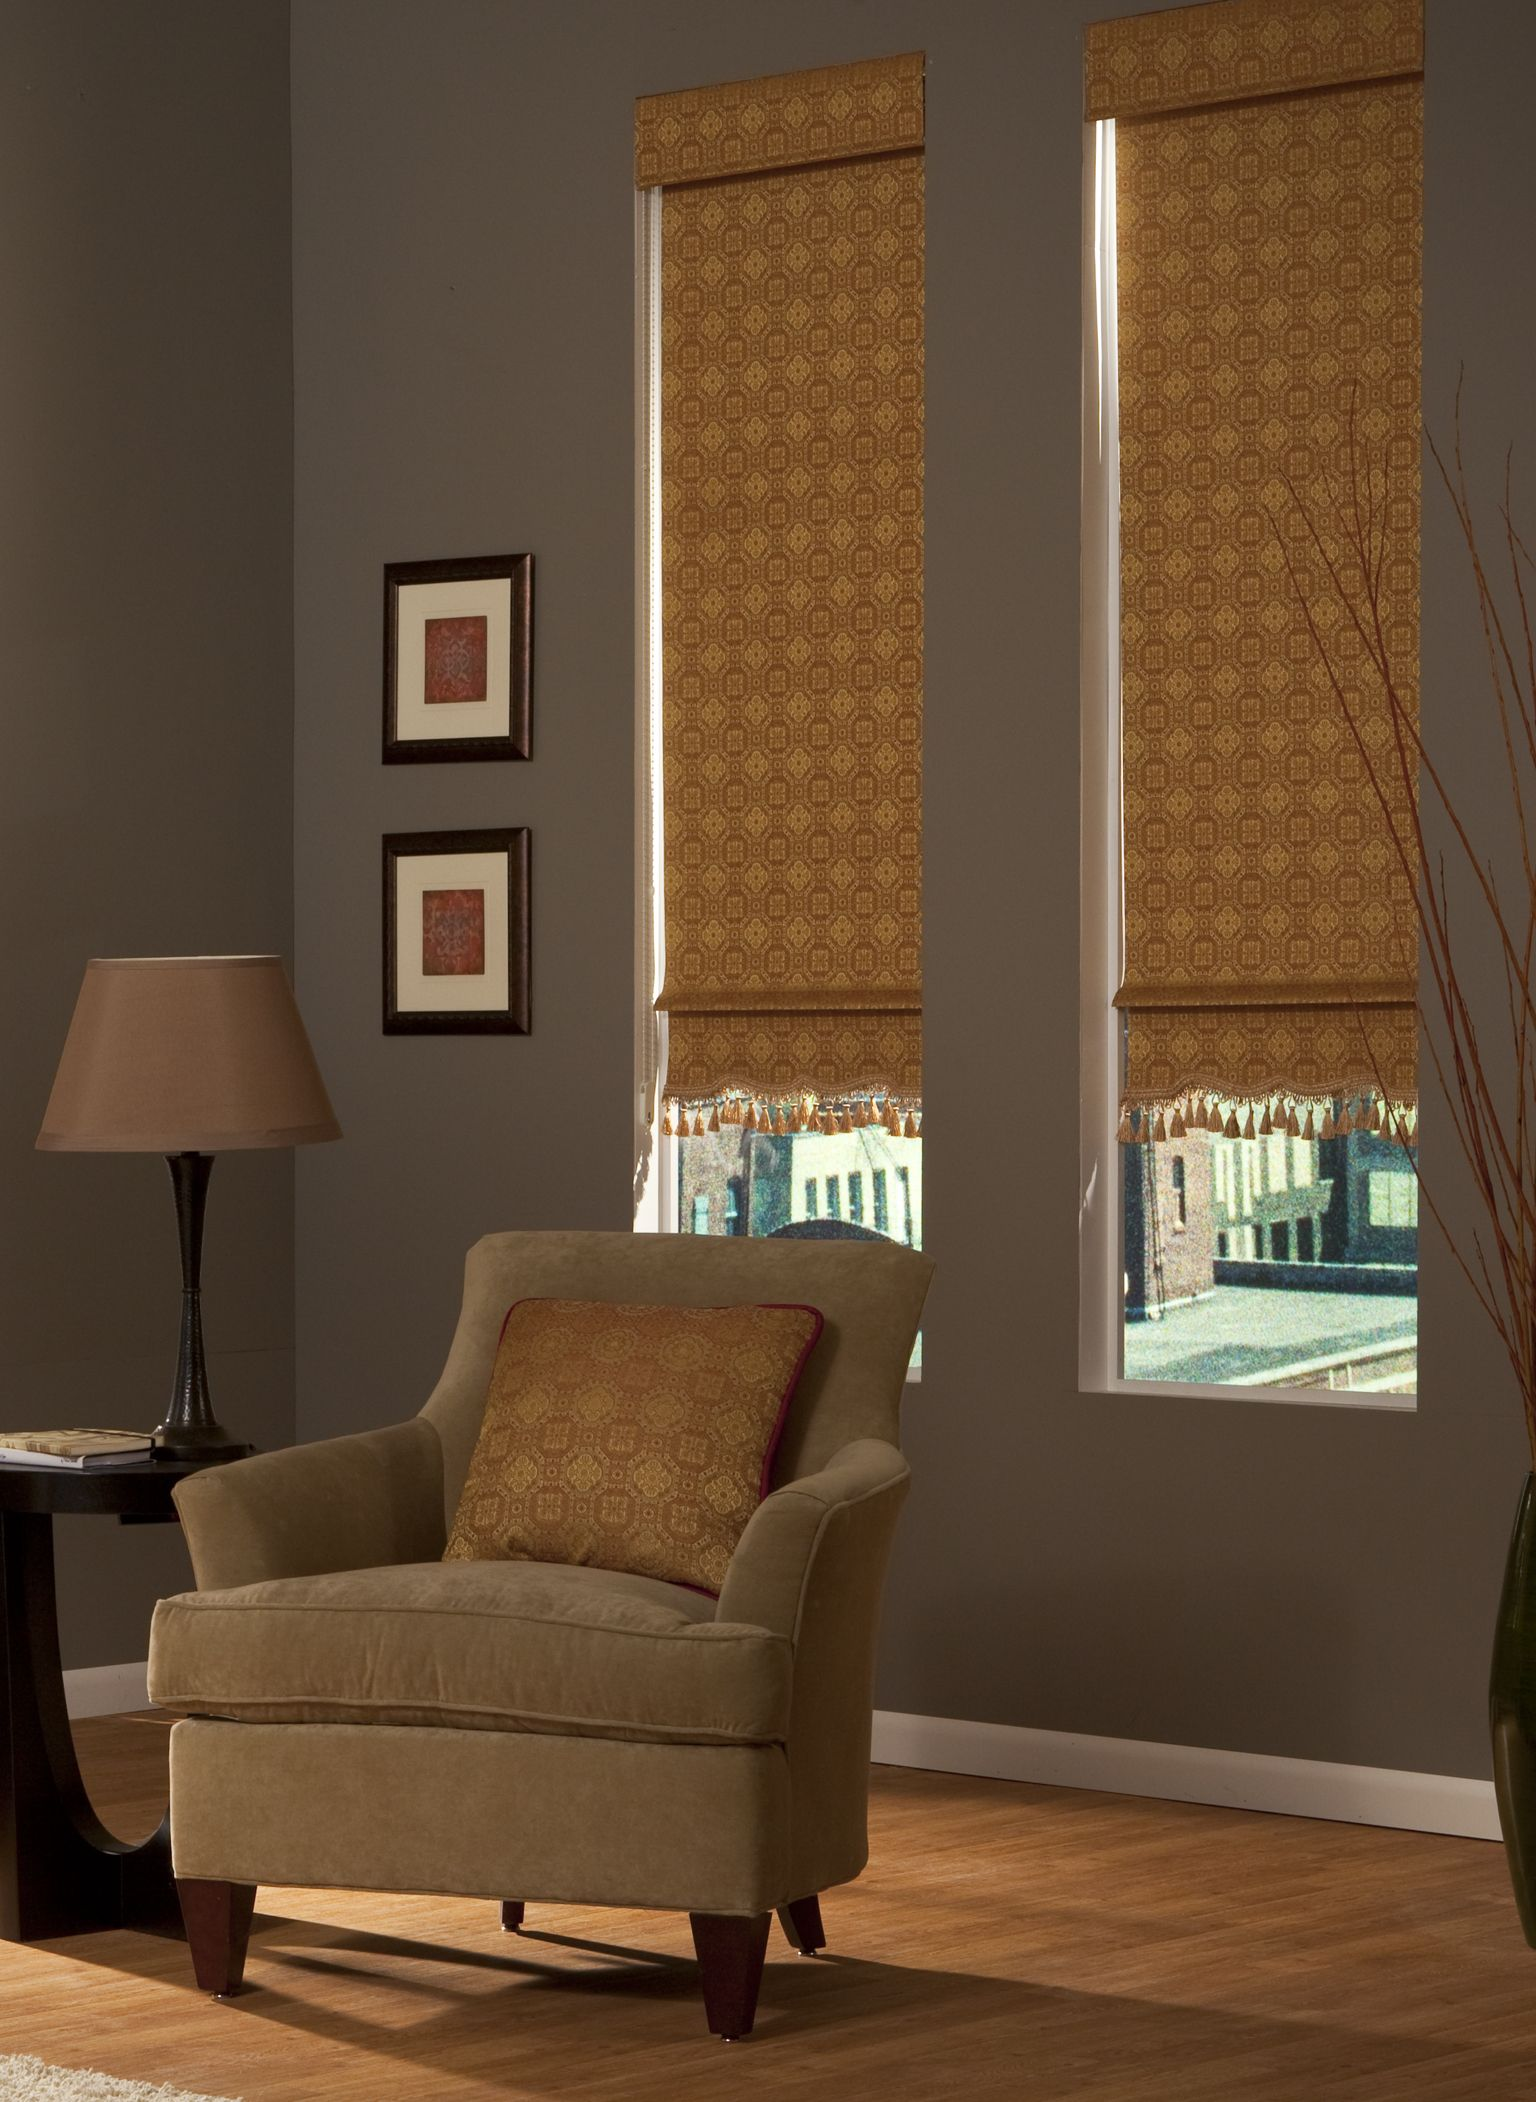 Add Extra Flair With Decorative Roller Shades Featuring A